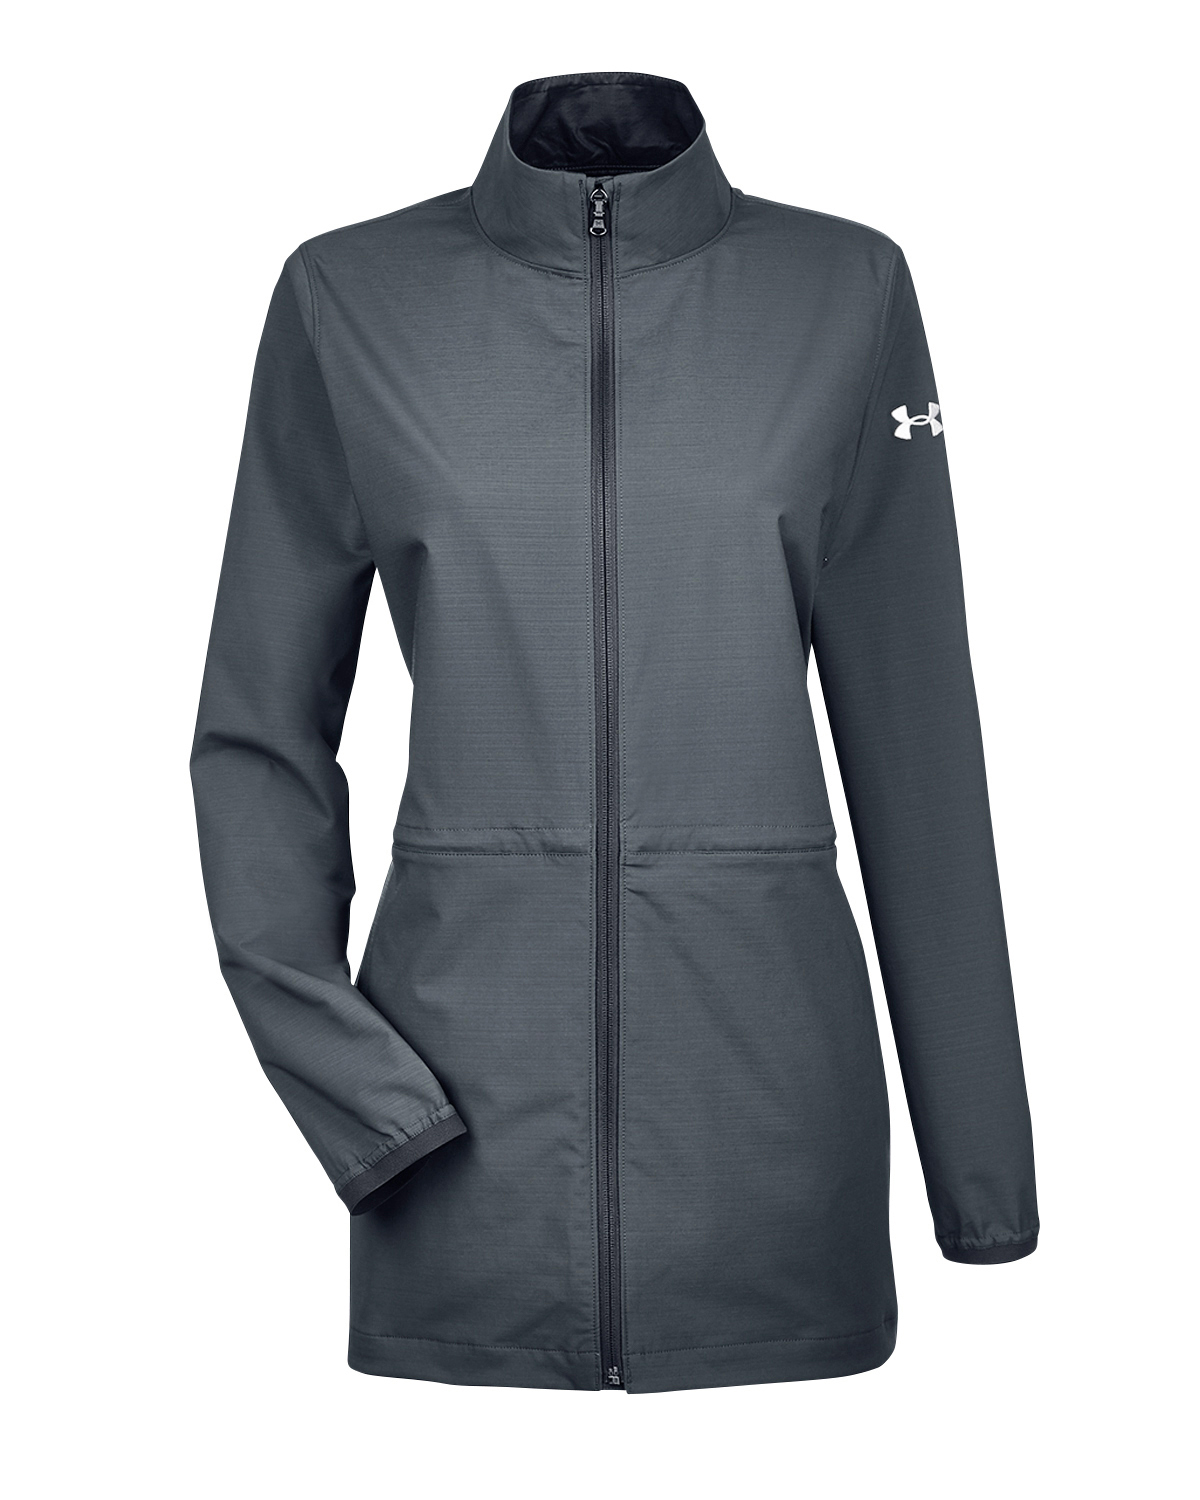 Under Armour 1317222 - Ladies' Corporate Windstrike Jacket